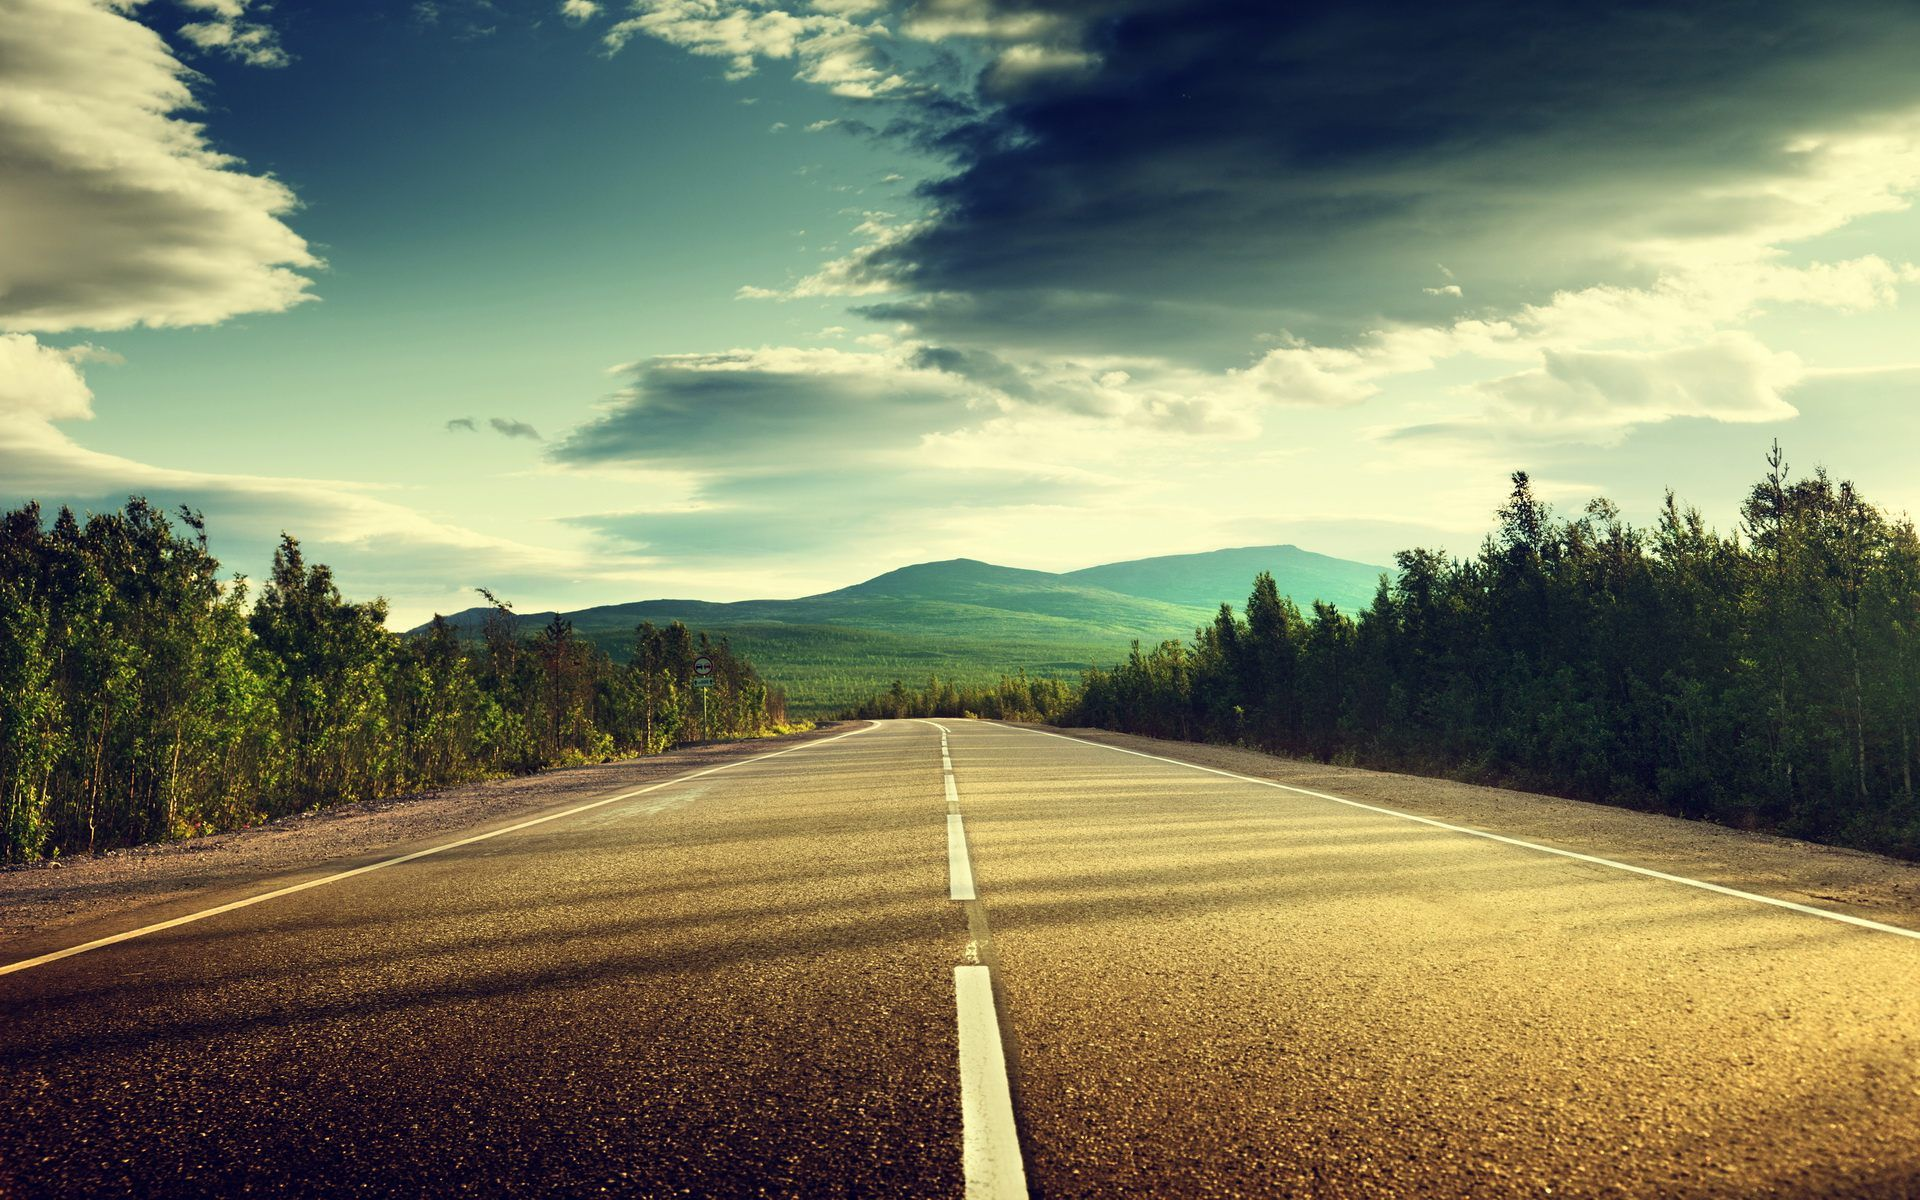 road wallpaper high quality resolution | landscape wallpapers